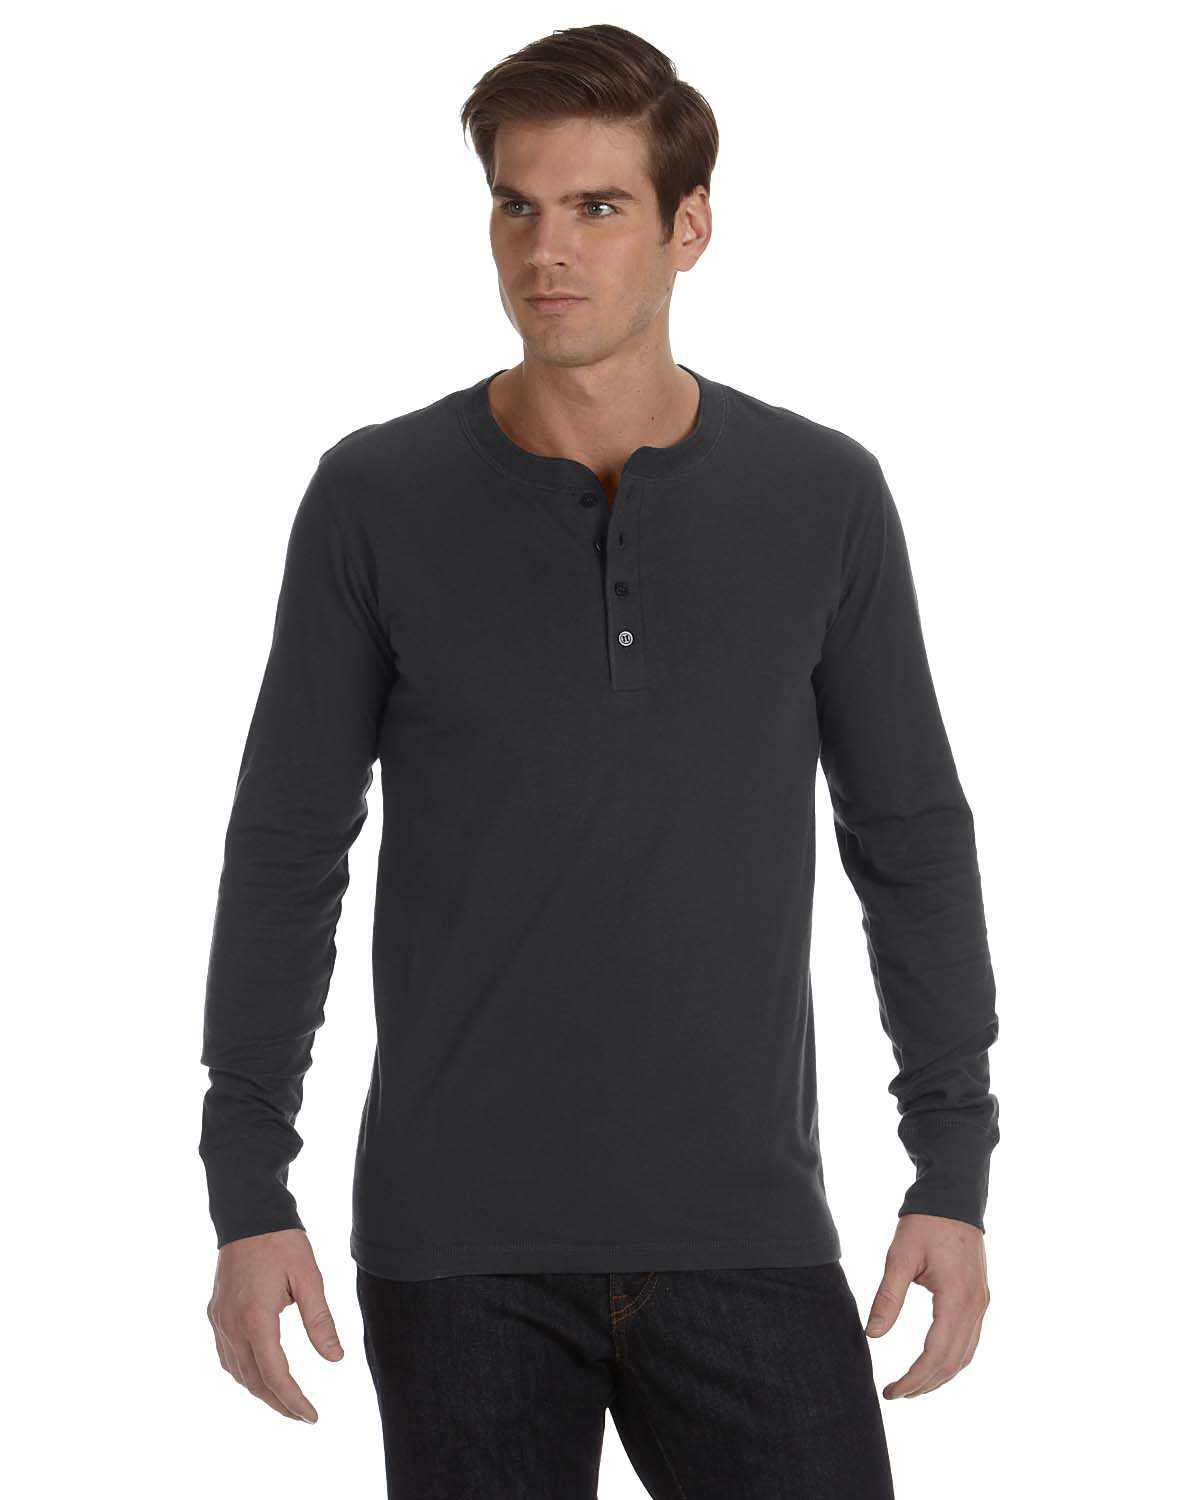 Men's Longtail T Long Sleeve Henley shirt is 3